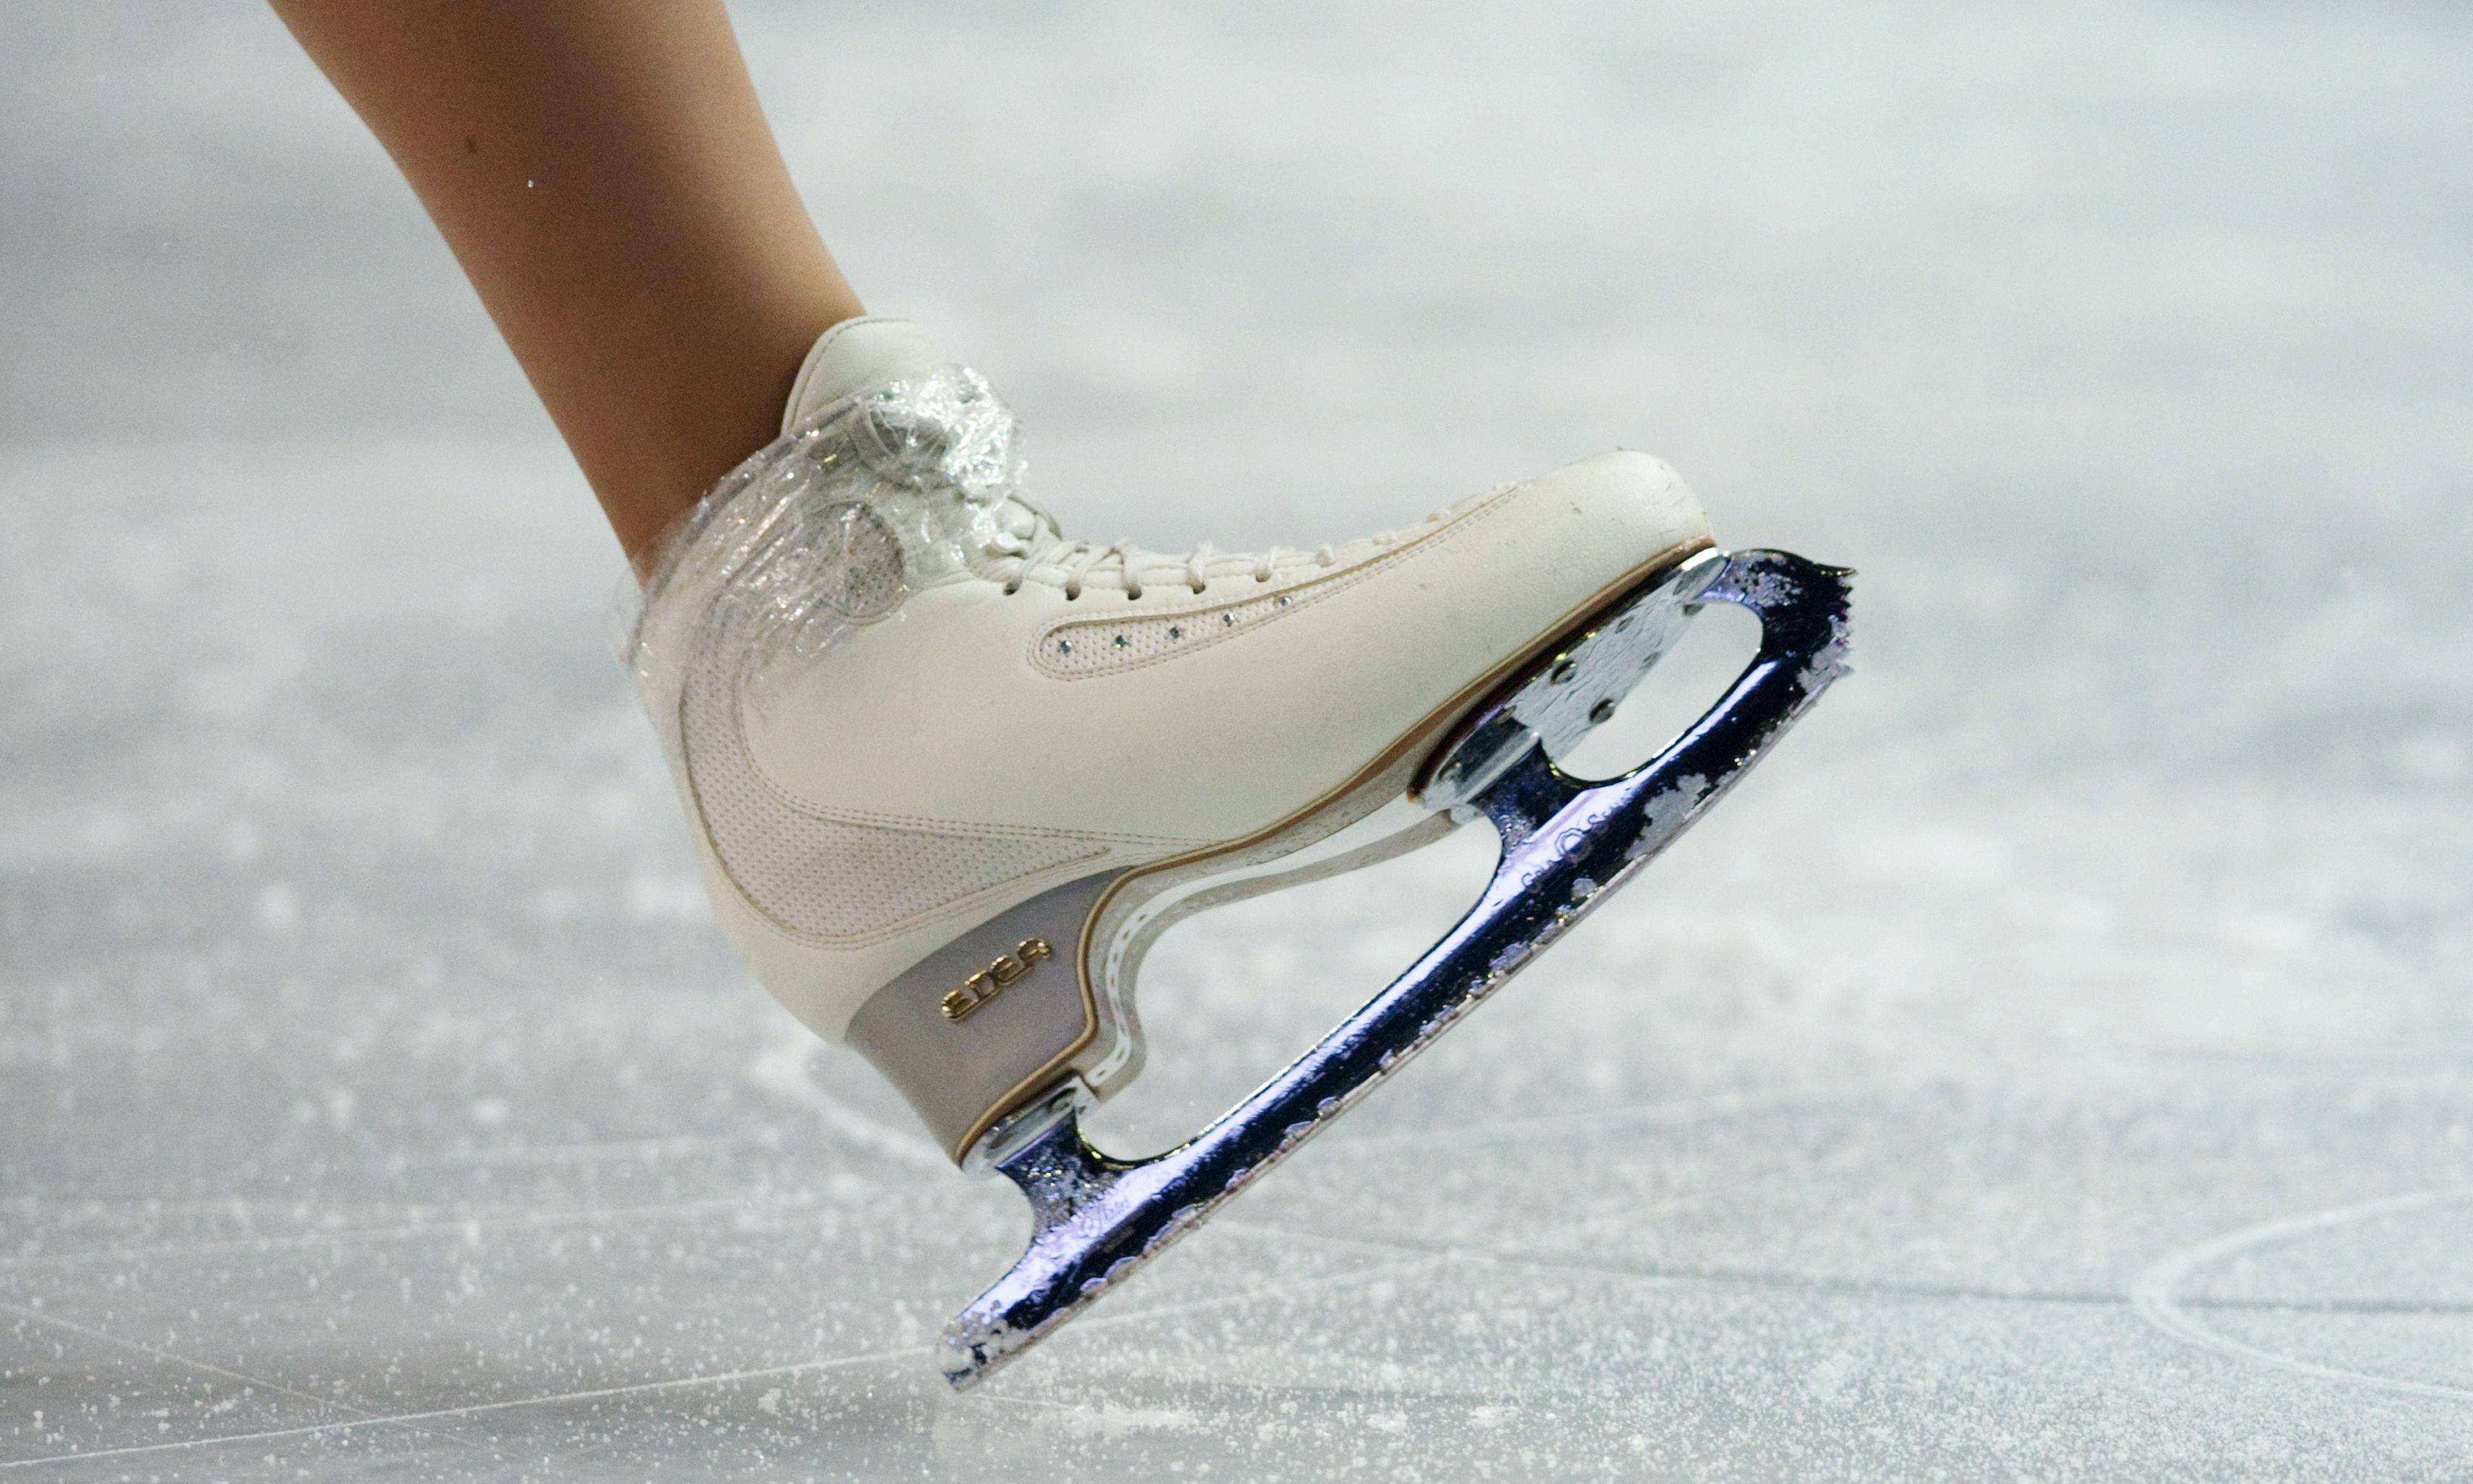 Partner of US figure skating champion says he sexually abused her for two years